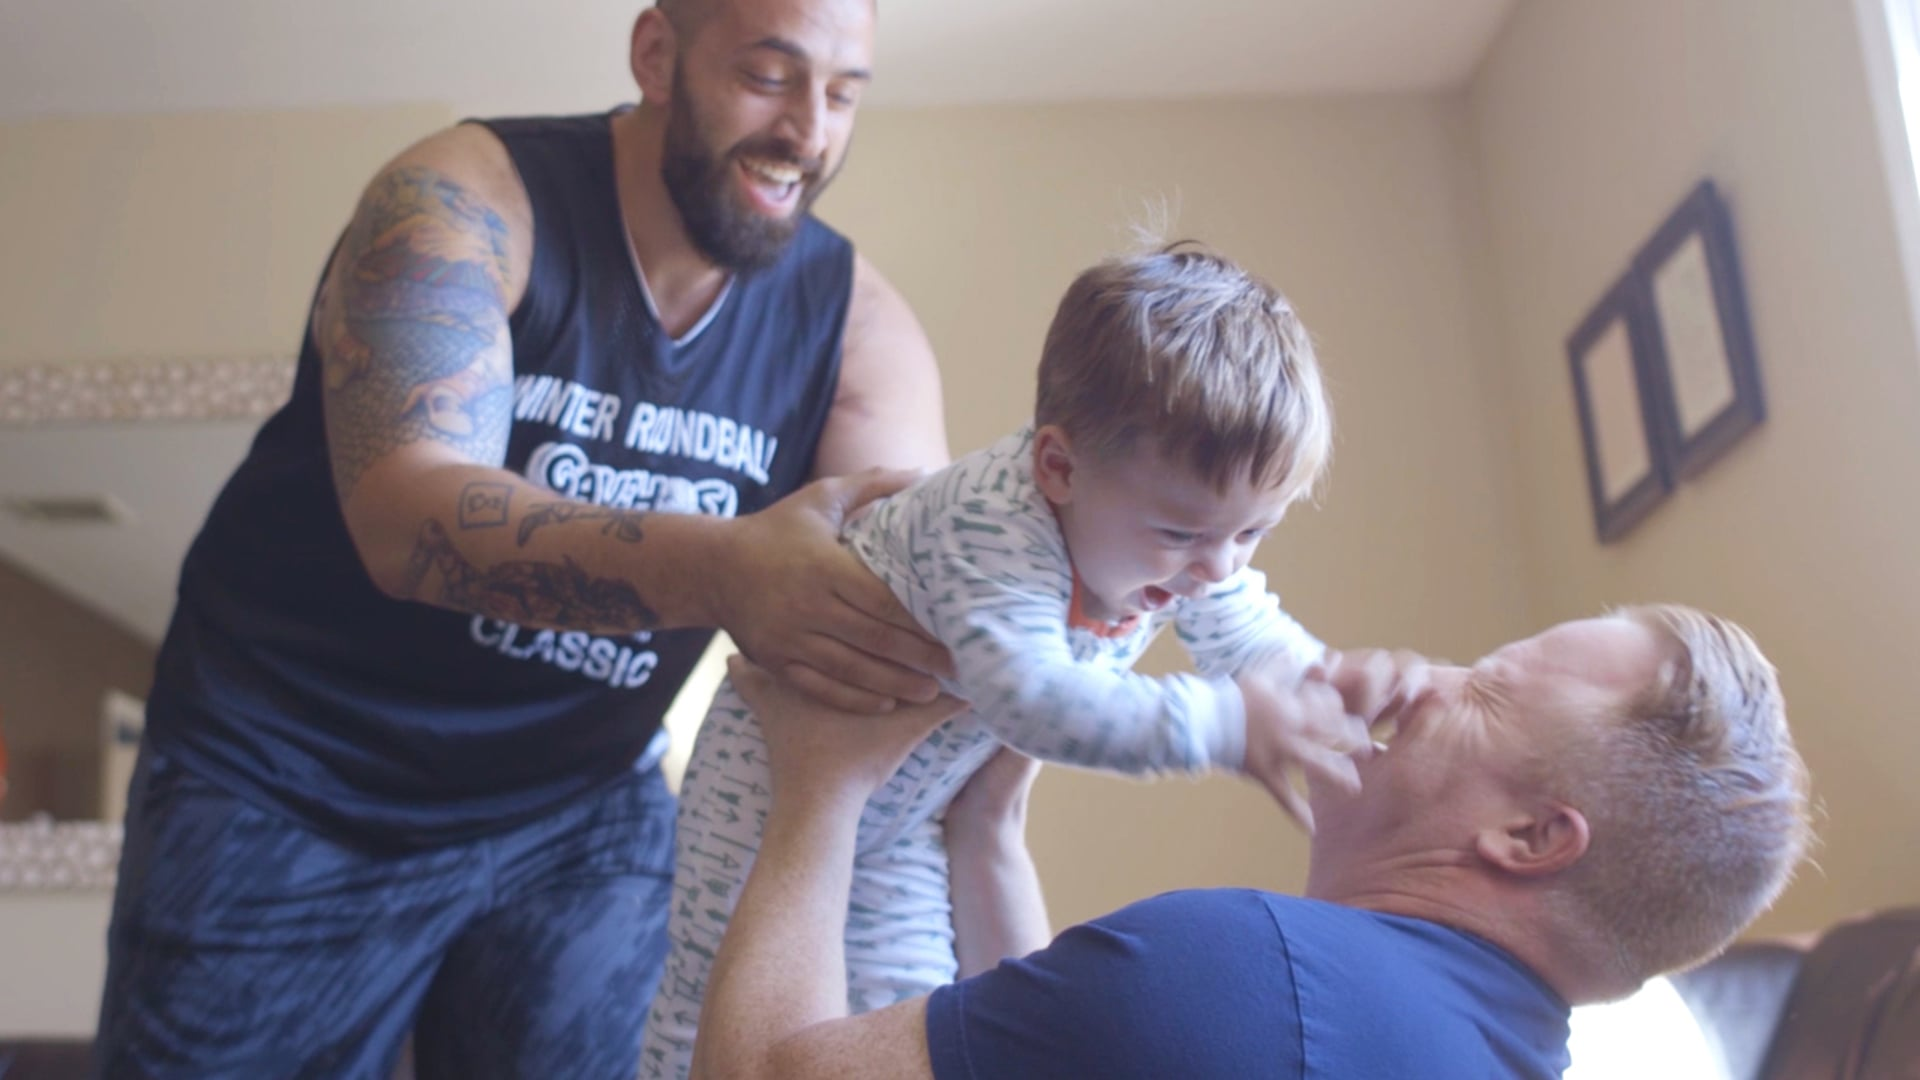 Day in the Life of Corey, Rocco & Forge